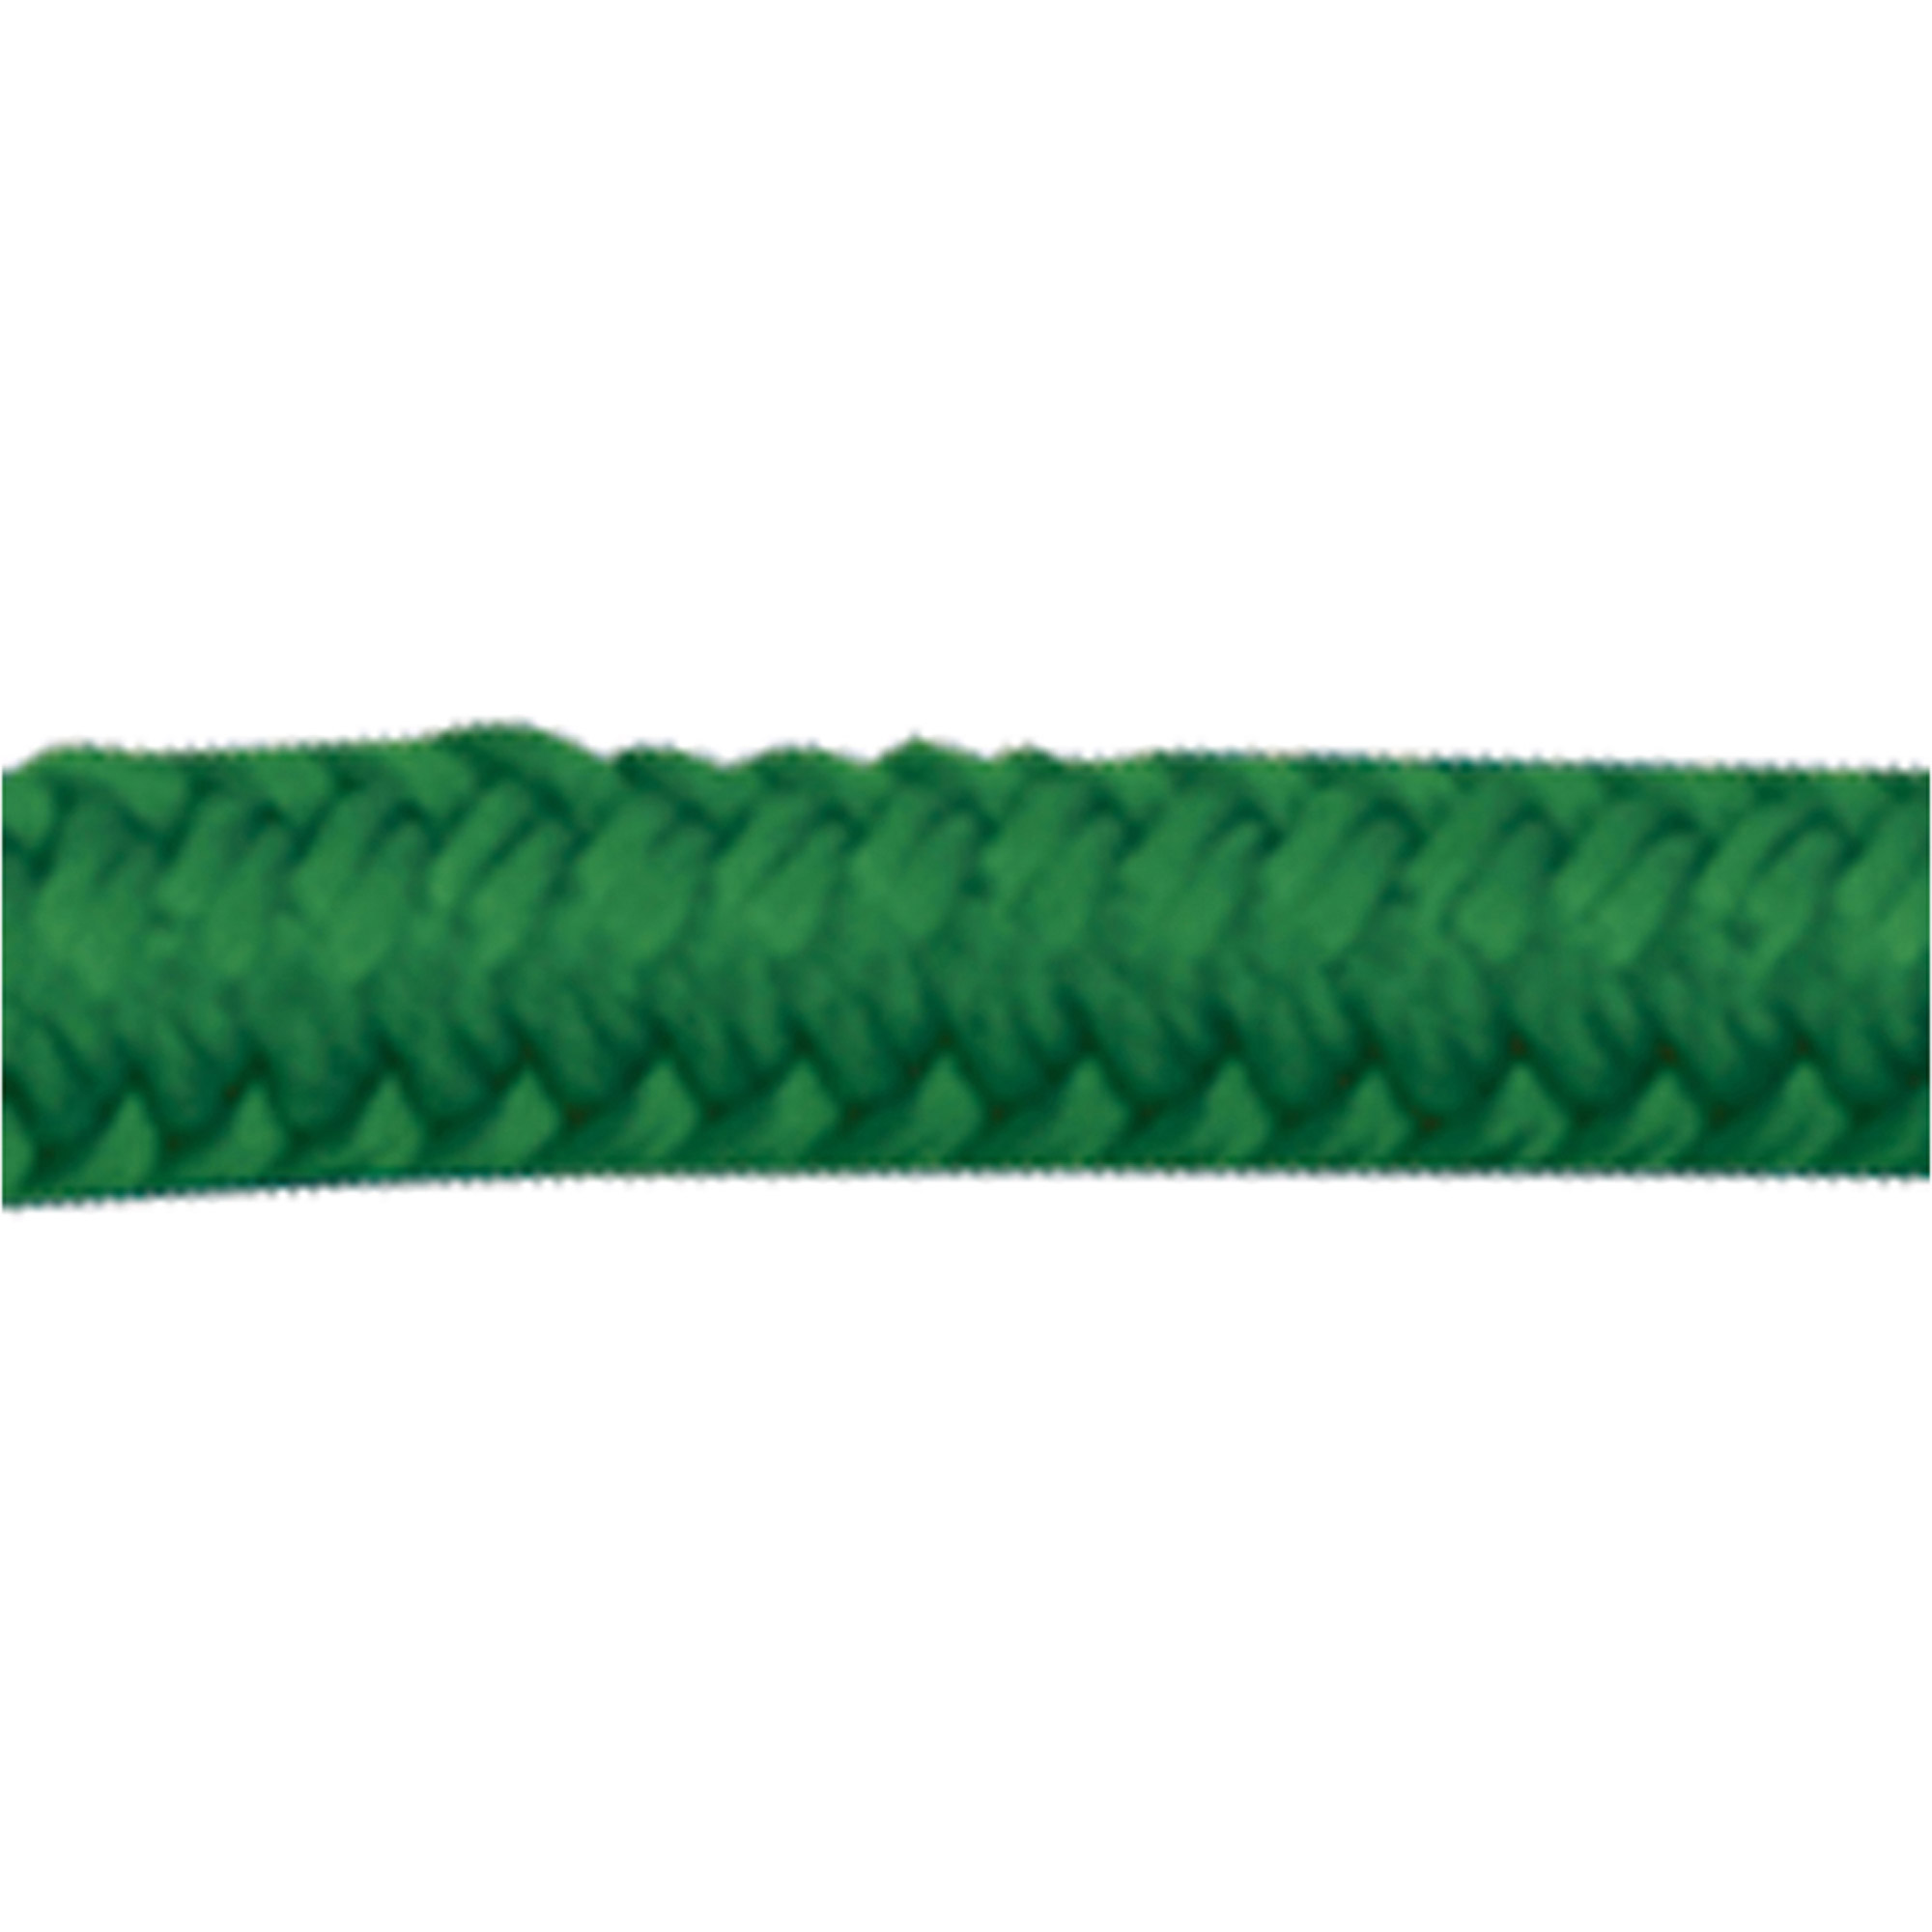 "Sea Dog Dock Line, Double Braided Nylon, 1 2"" x 15', Green by Sea Dog"